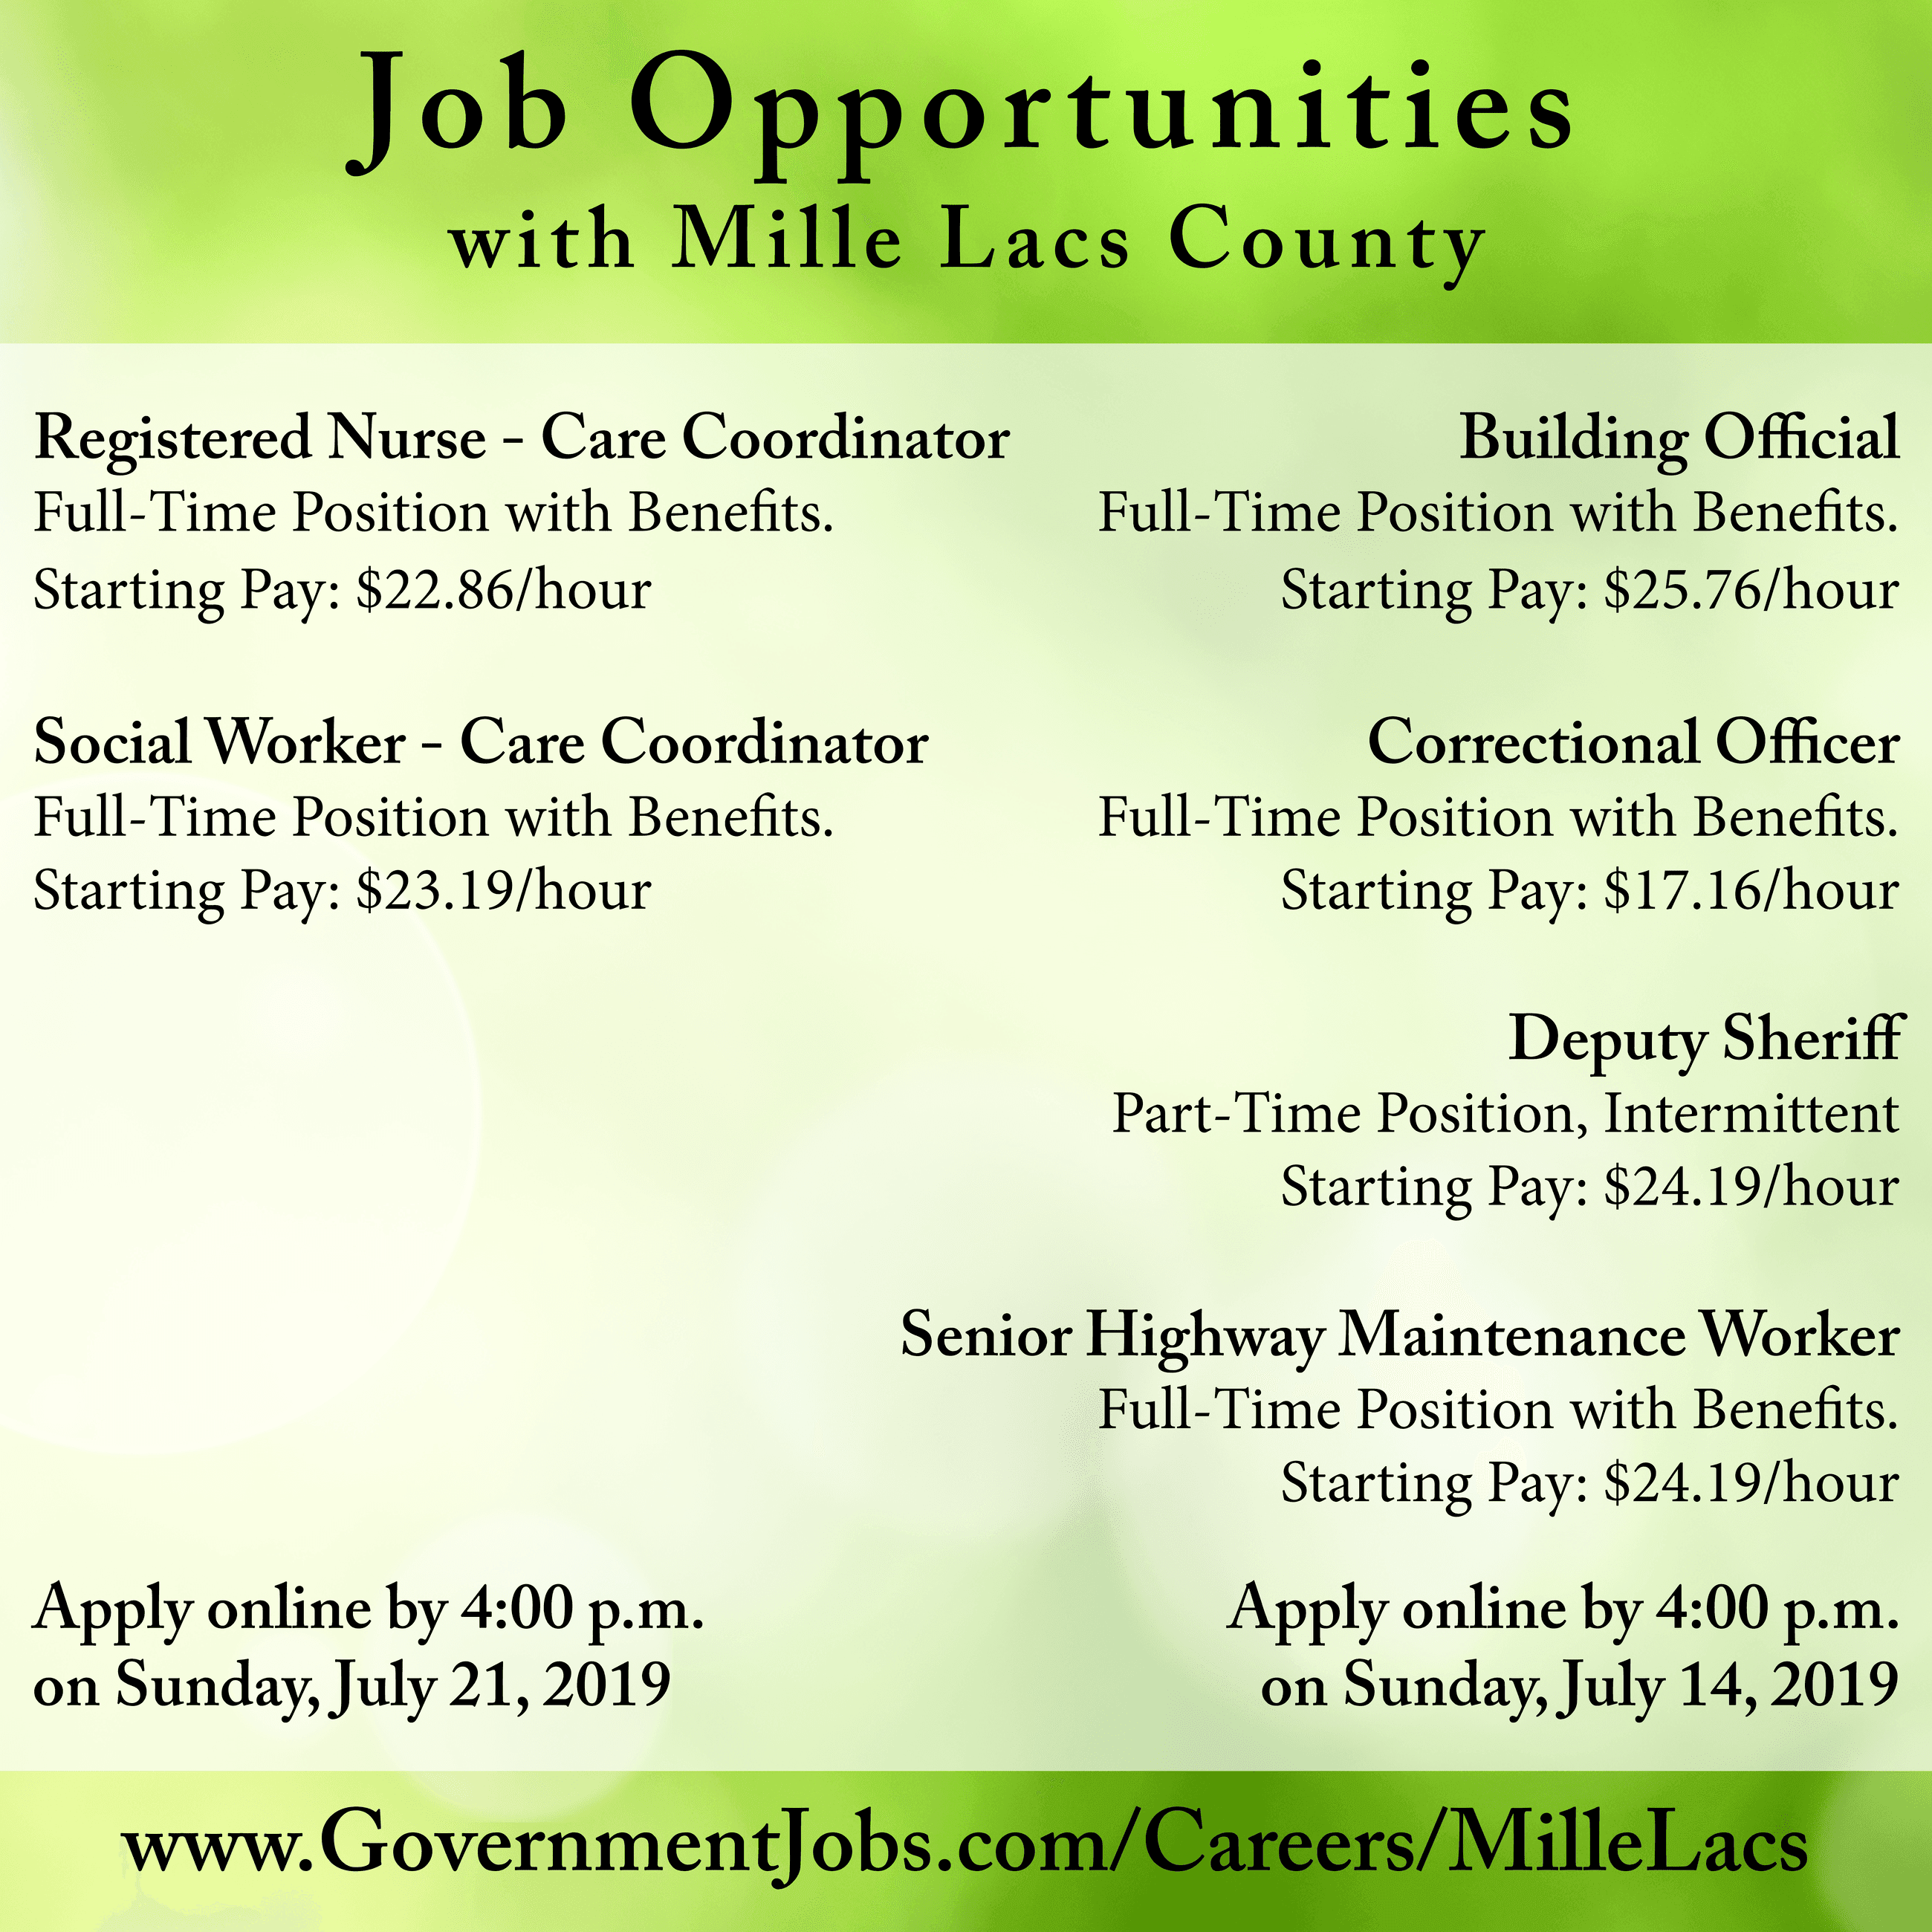 Job Opportunities flyer